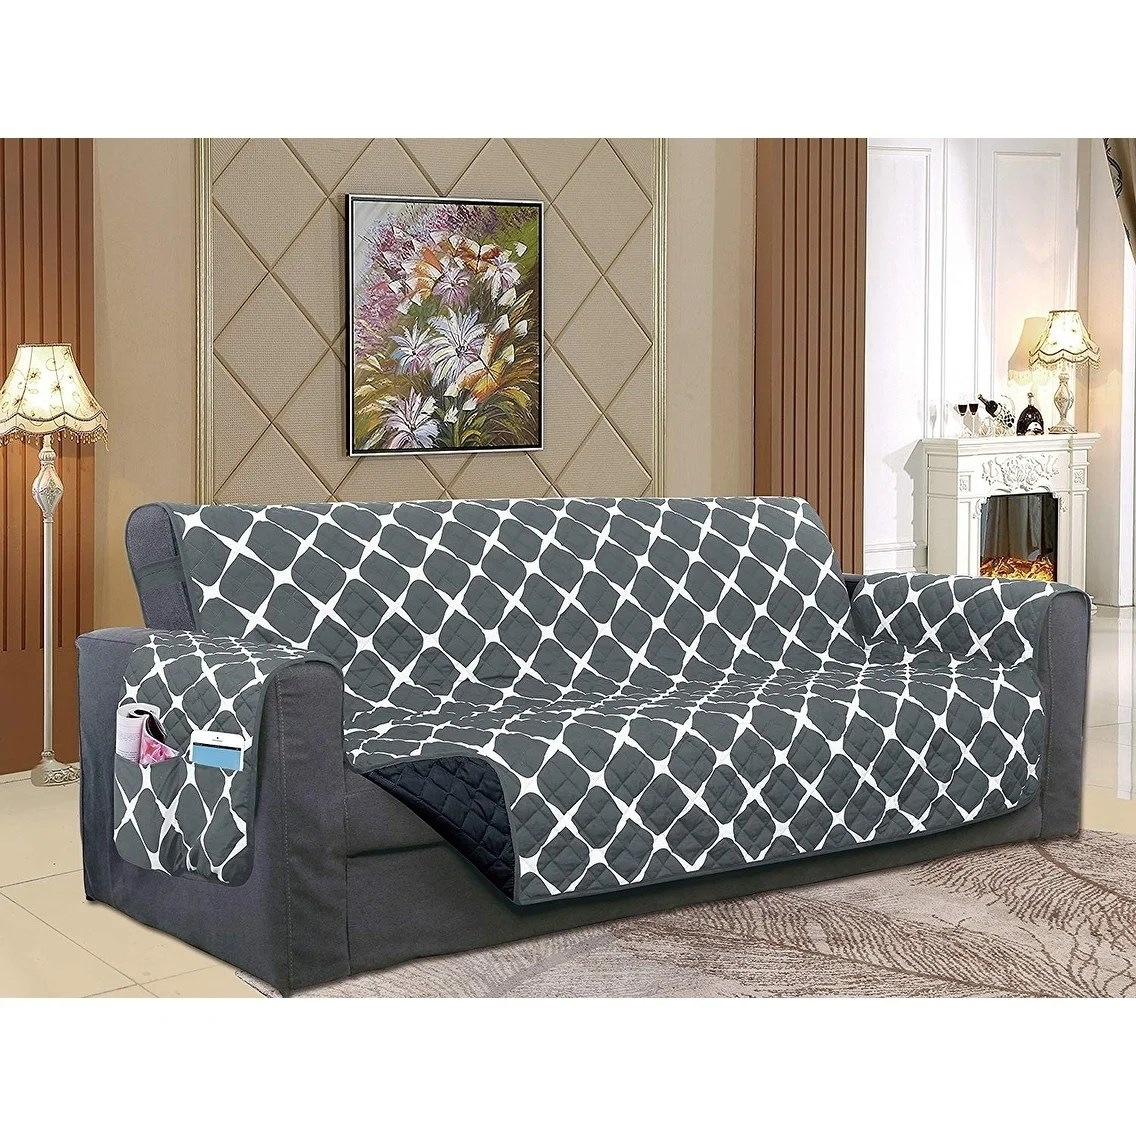 Oversized Couch Elegant Comfort 2 Tone Bloomingdale Pattern Quilted Oversized Sofa Furniture Protector